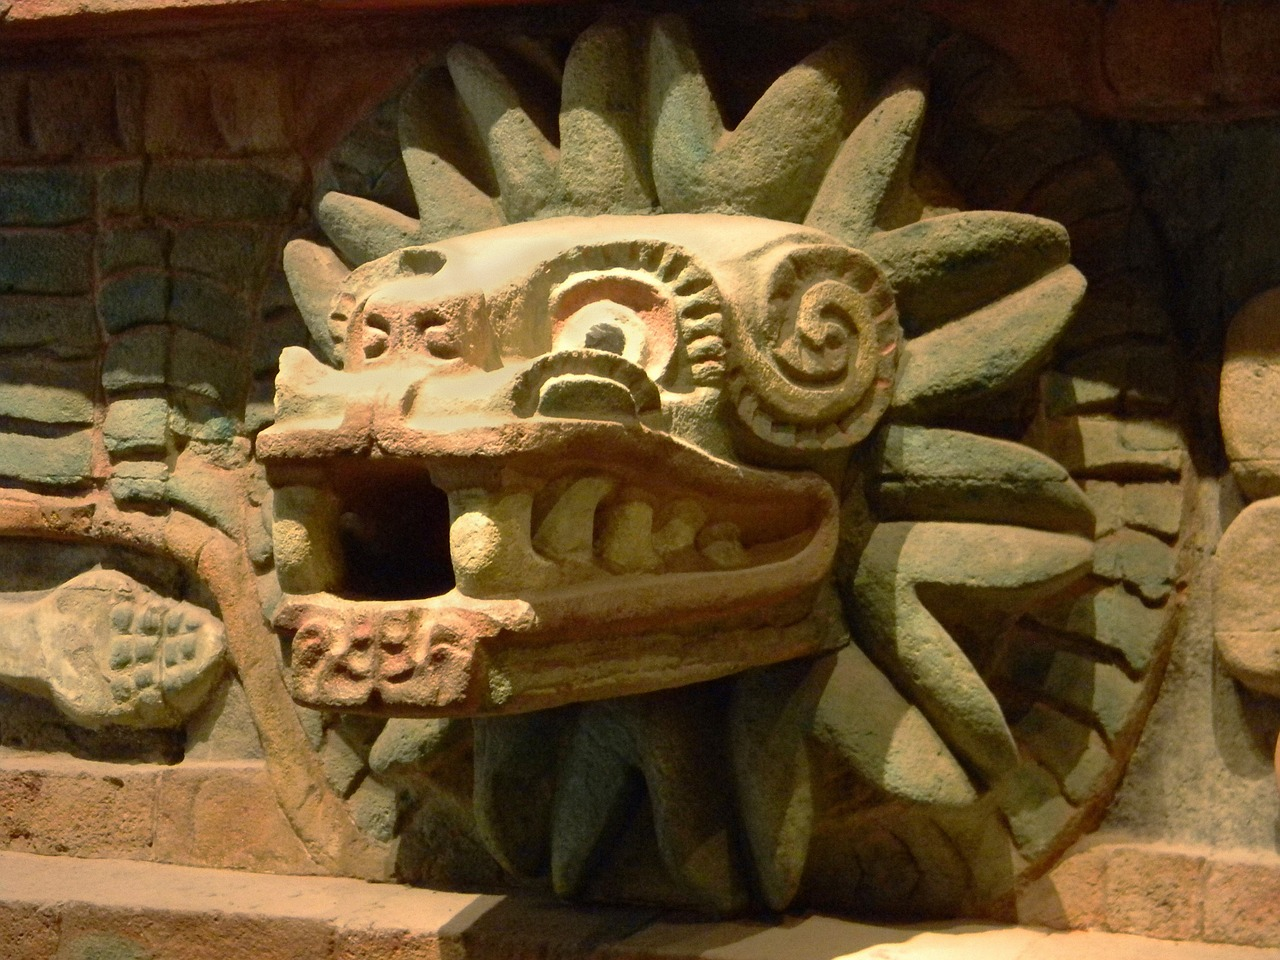 Quetzalcoatl at the Temple of the Feathered Serpent in Teotihuacan Mexico, early 3rd century AD.